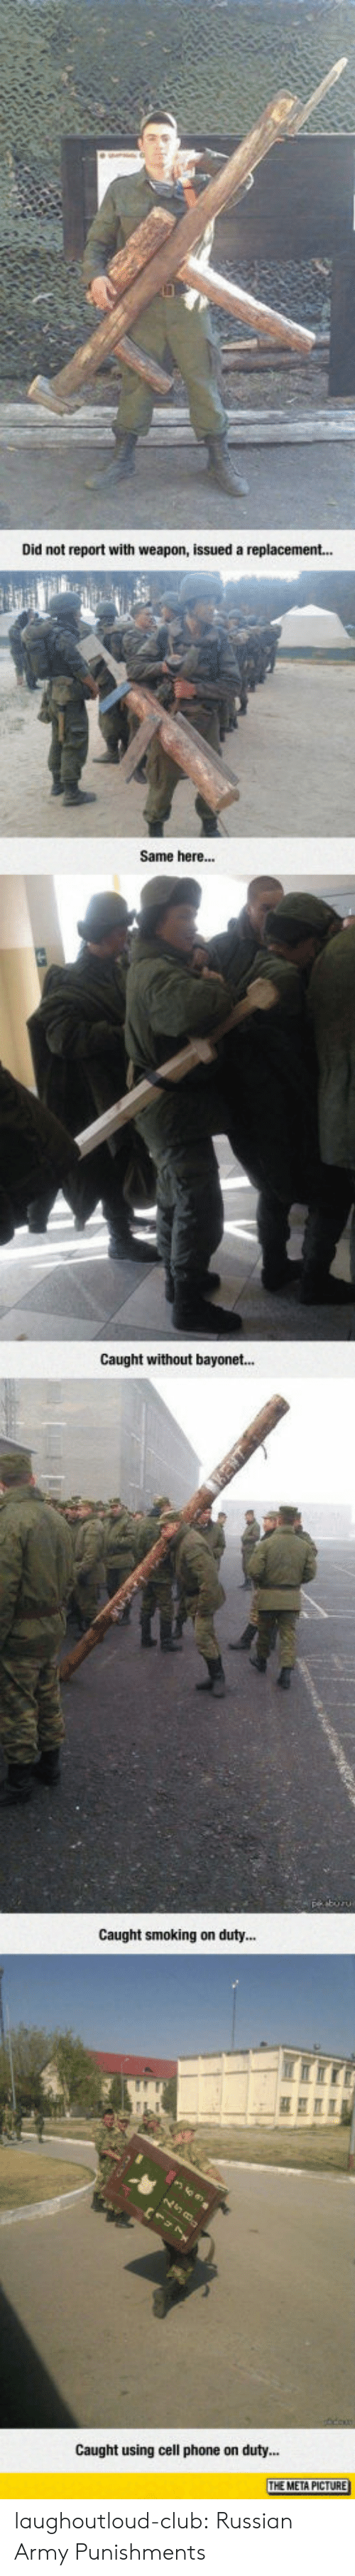 Club, Phone, and Smoking: Did not report with weapon, issued a replacement...  Same here...  Caught without bayonet...  Caught smoking on dut..  Caught using cell phone on duty... laughoutloud-club:  Russian Army Punishments